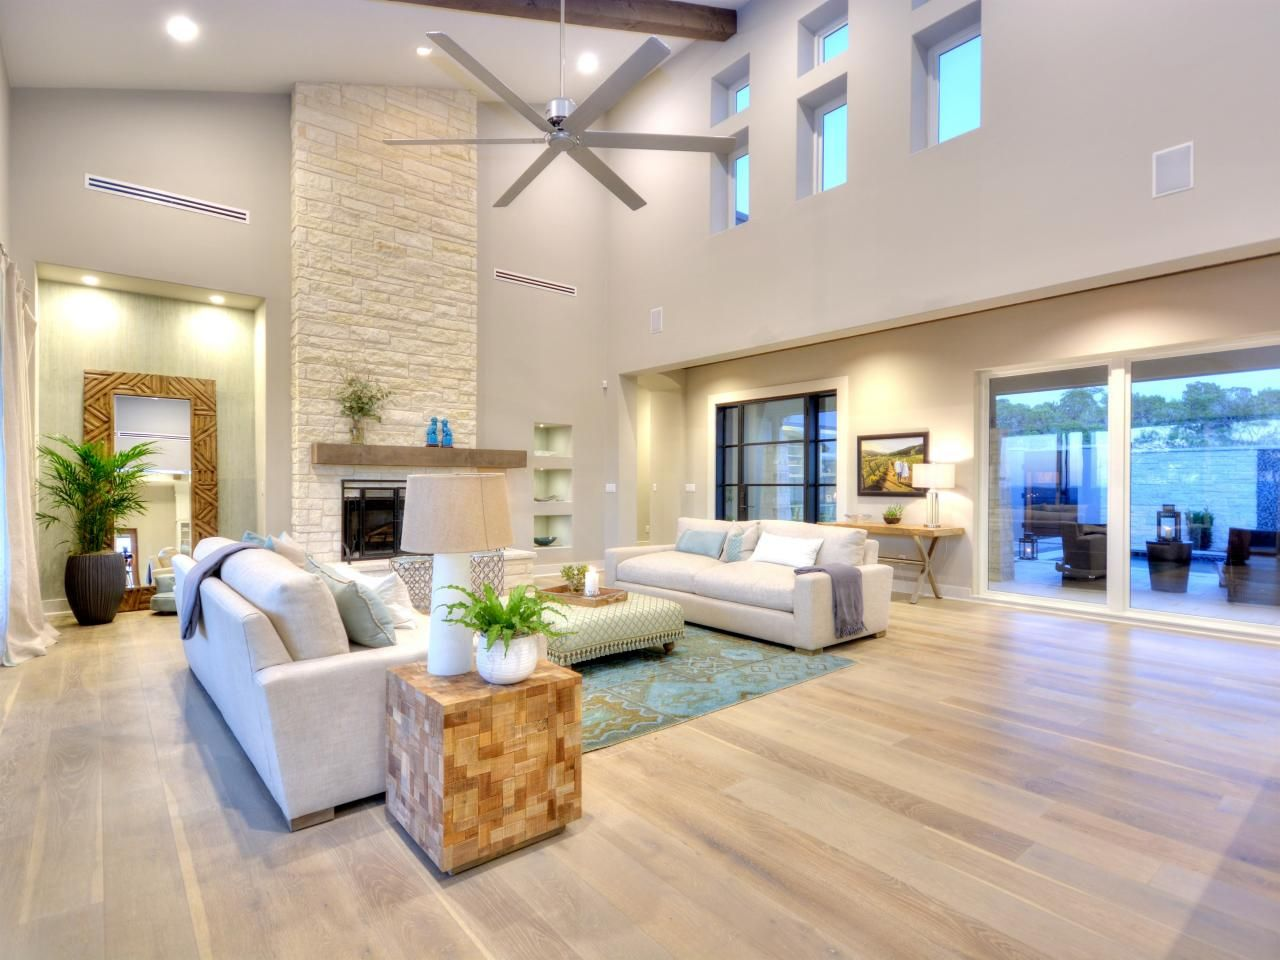 Installing Hardwood Floors In The House In 2020 Wood Floor